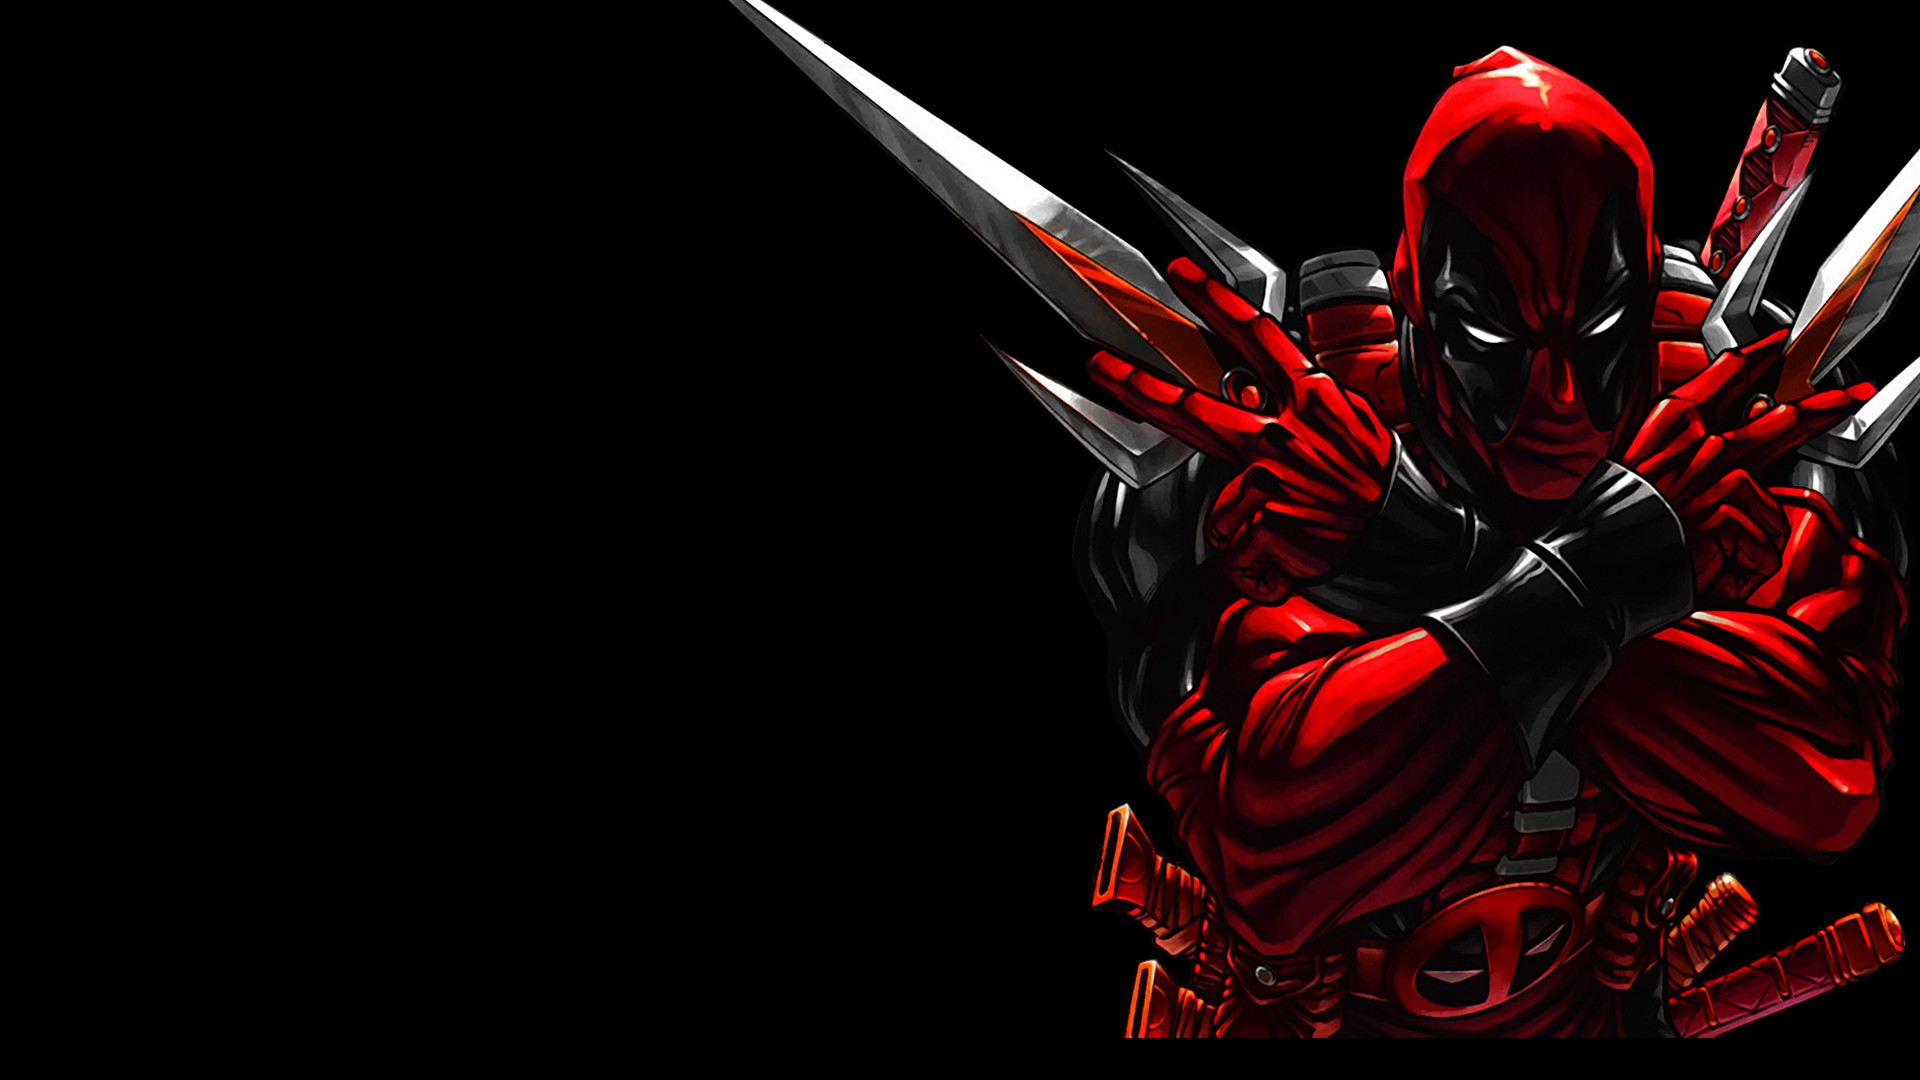 Wallpaper #27 Tapeta na pulpit Deadpool: The Video Game